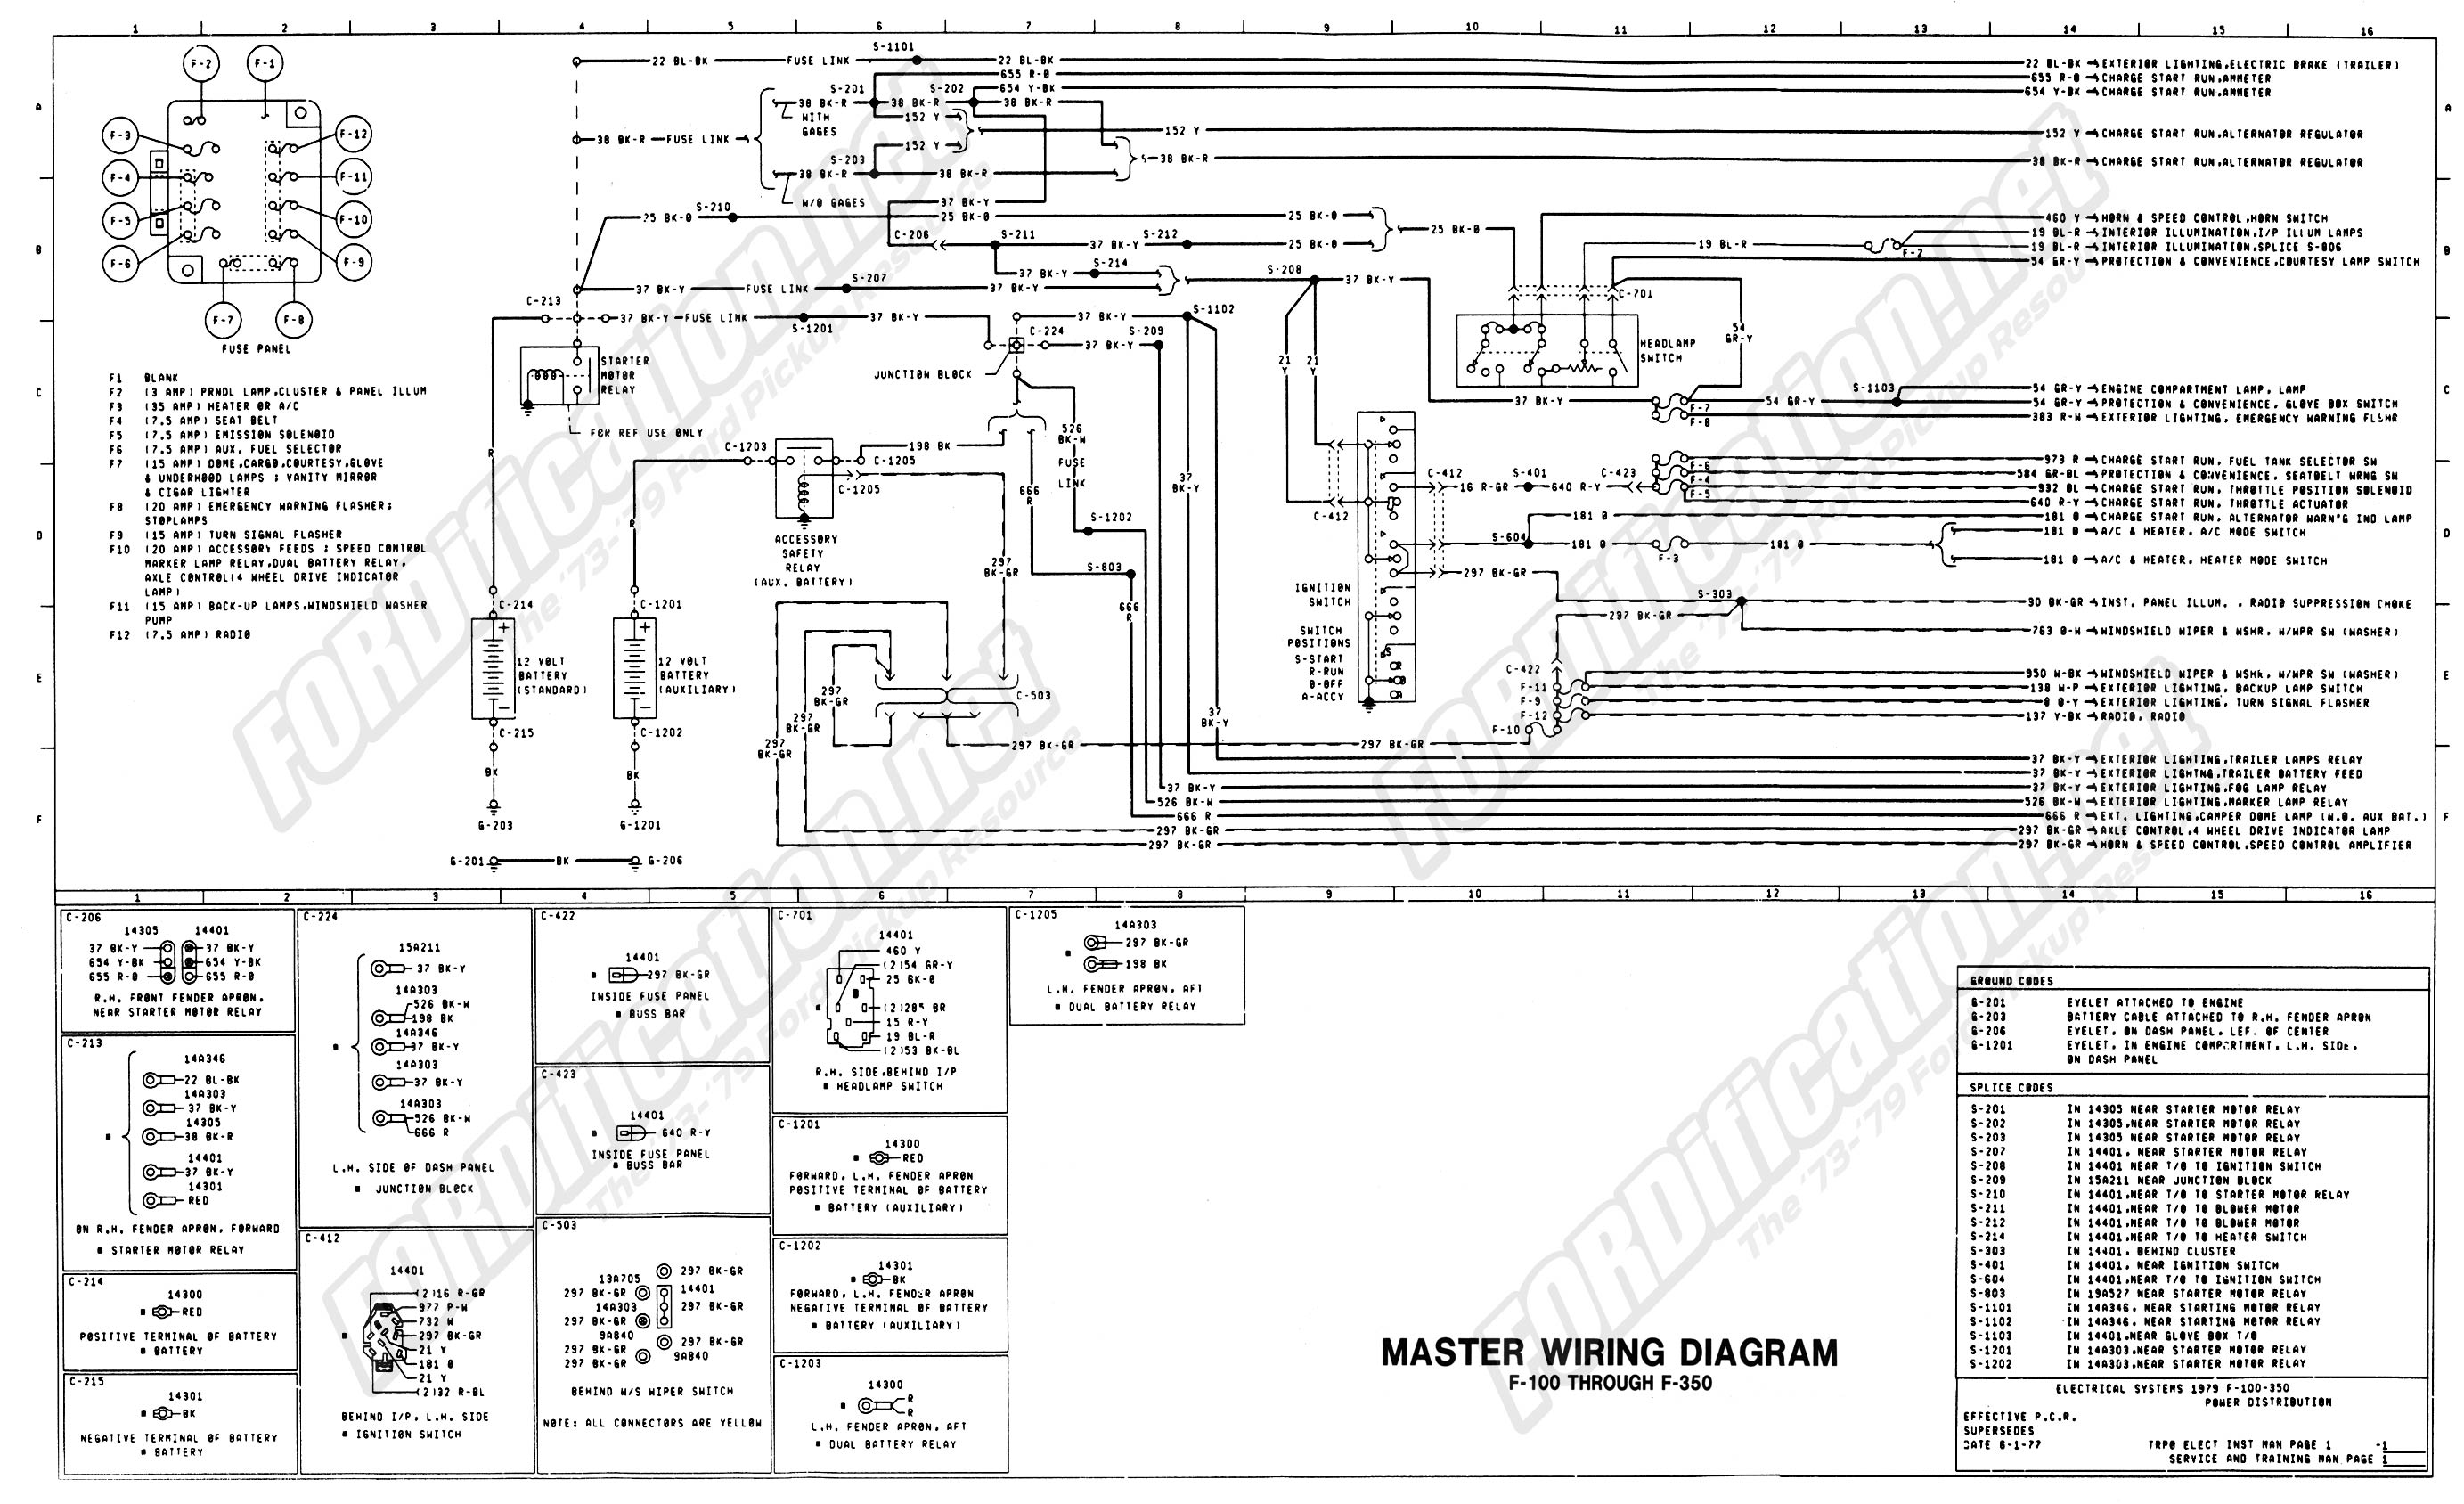 wiring_79master_1of9 www fordification net tech images wiring wiring_79 1999 Dodge Fuse Box Diagram at suagrazia.org